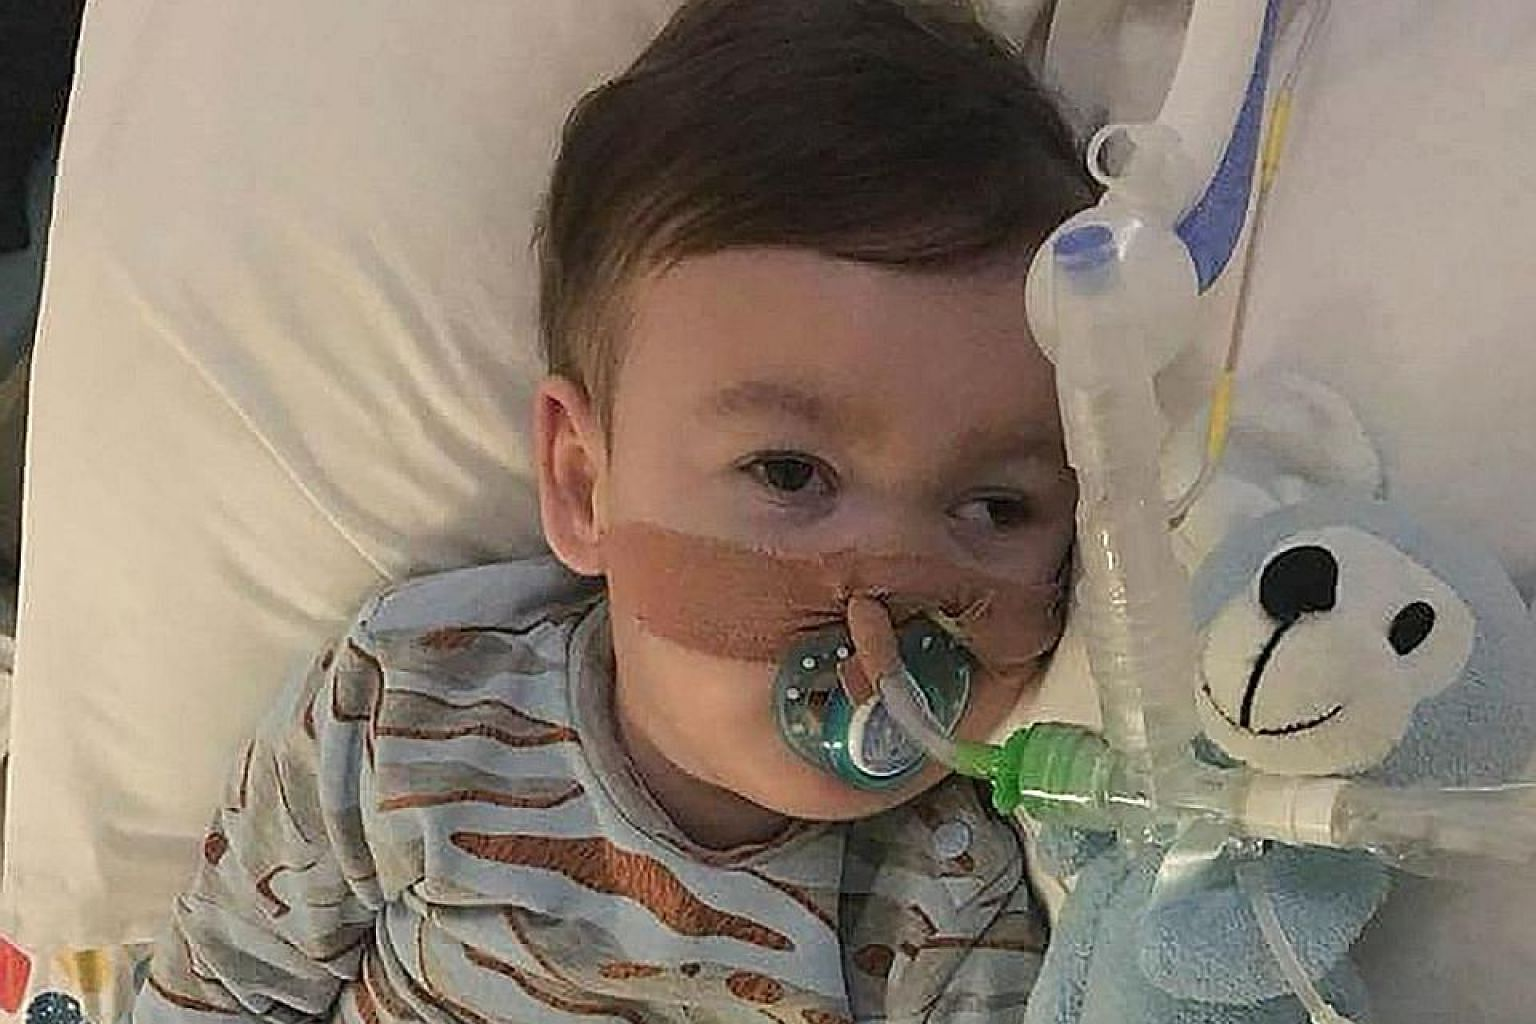 Alfie Evans died in April nearly a week after his life support was withdrawn.